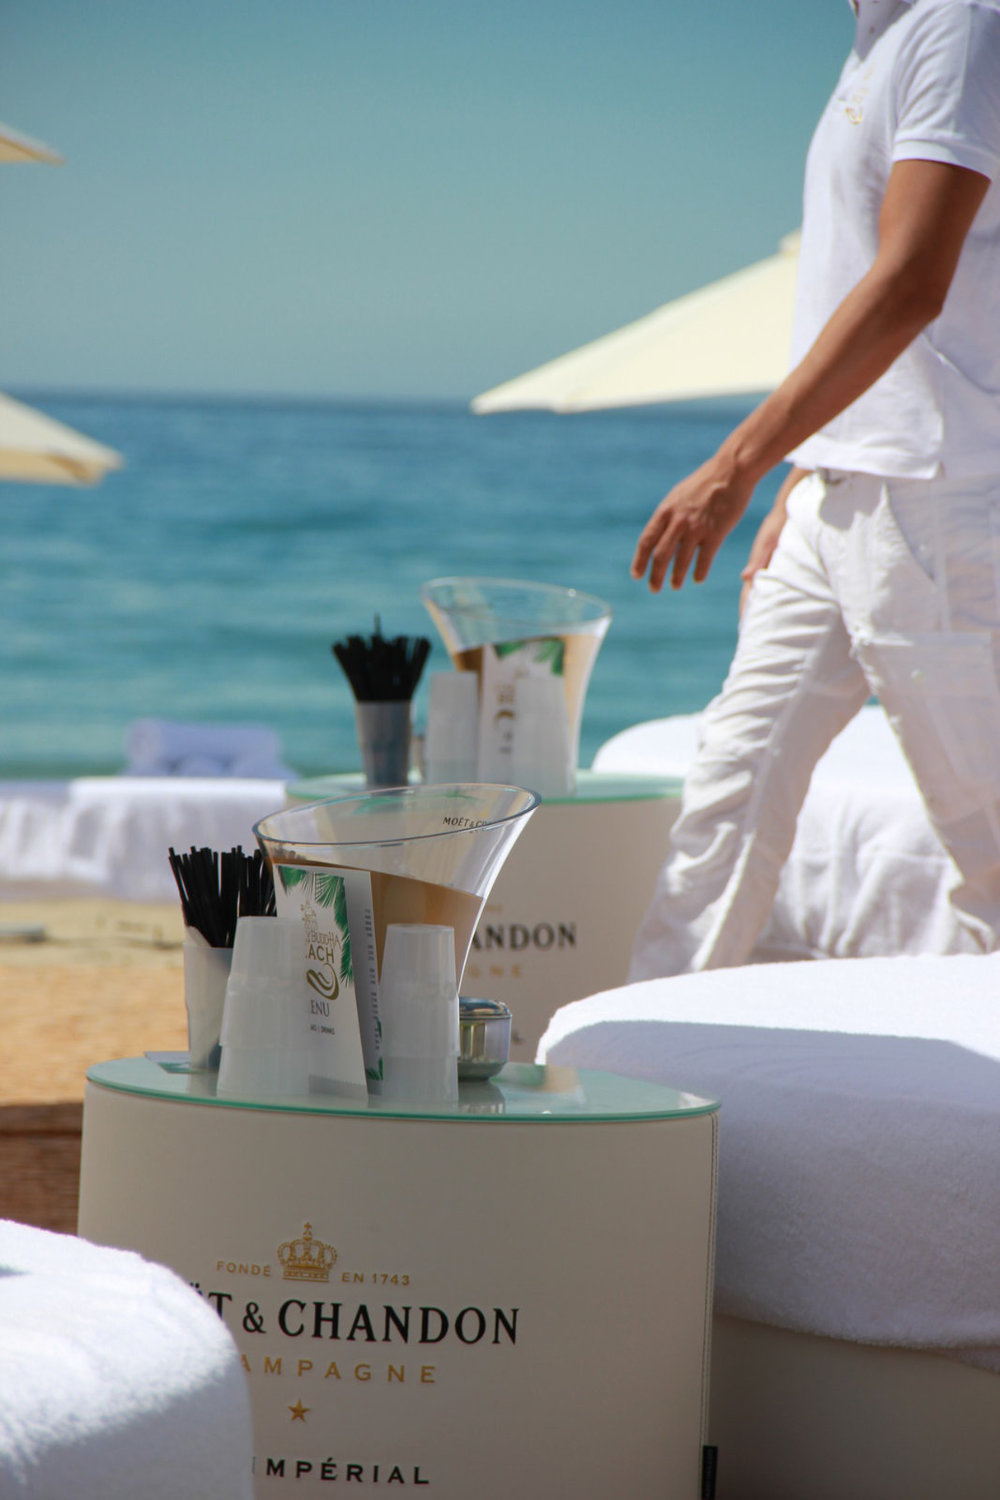 Moet-beach-event.jpg